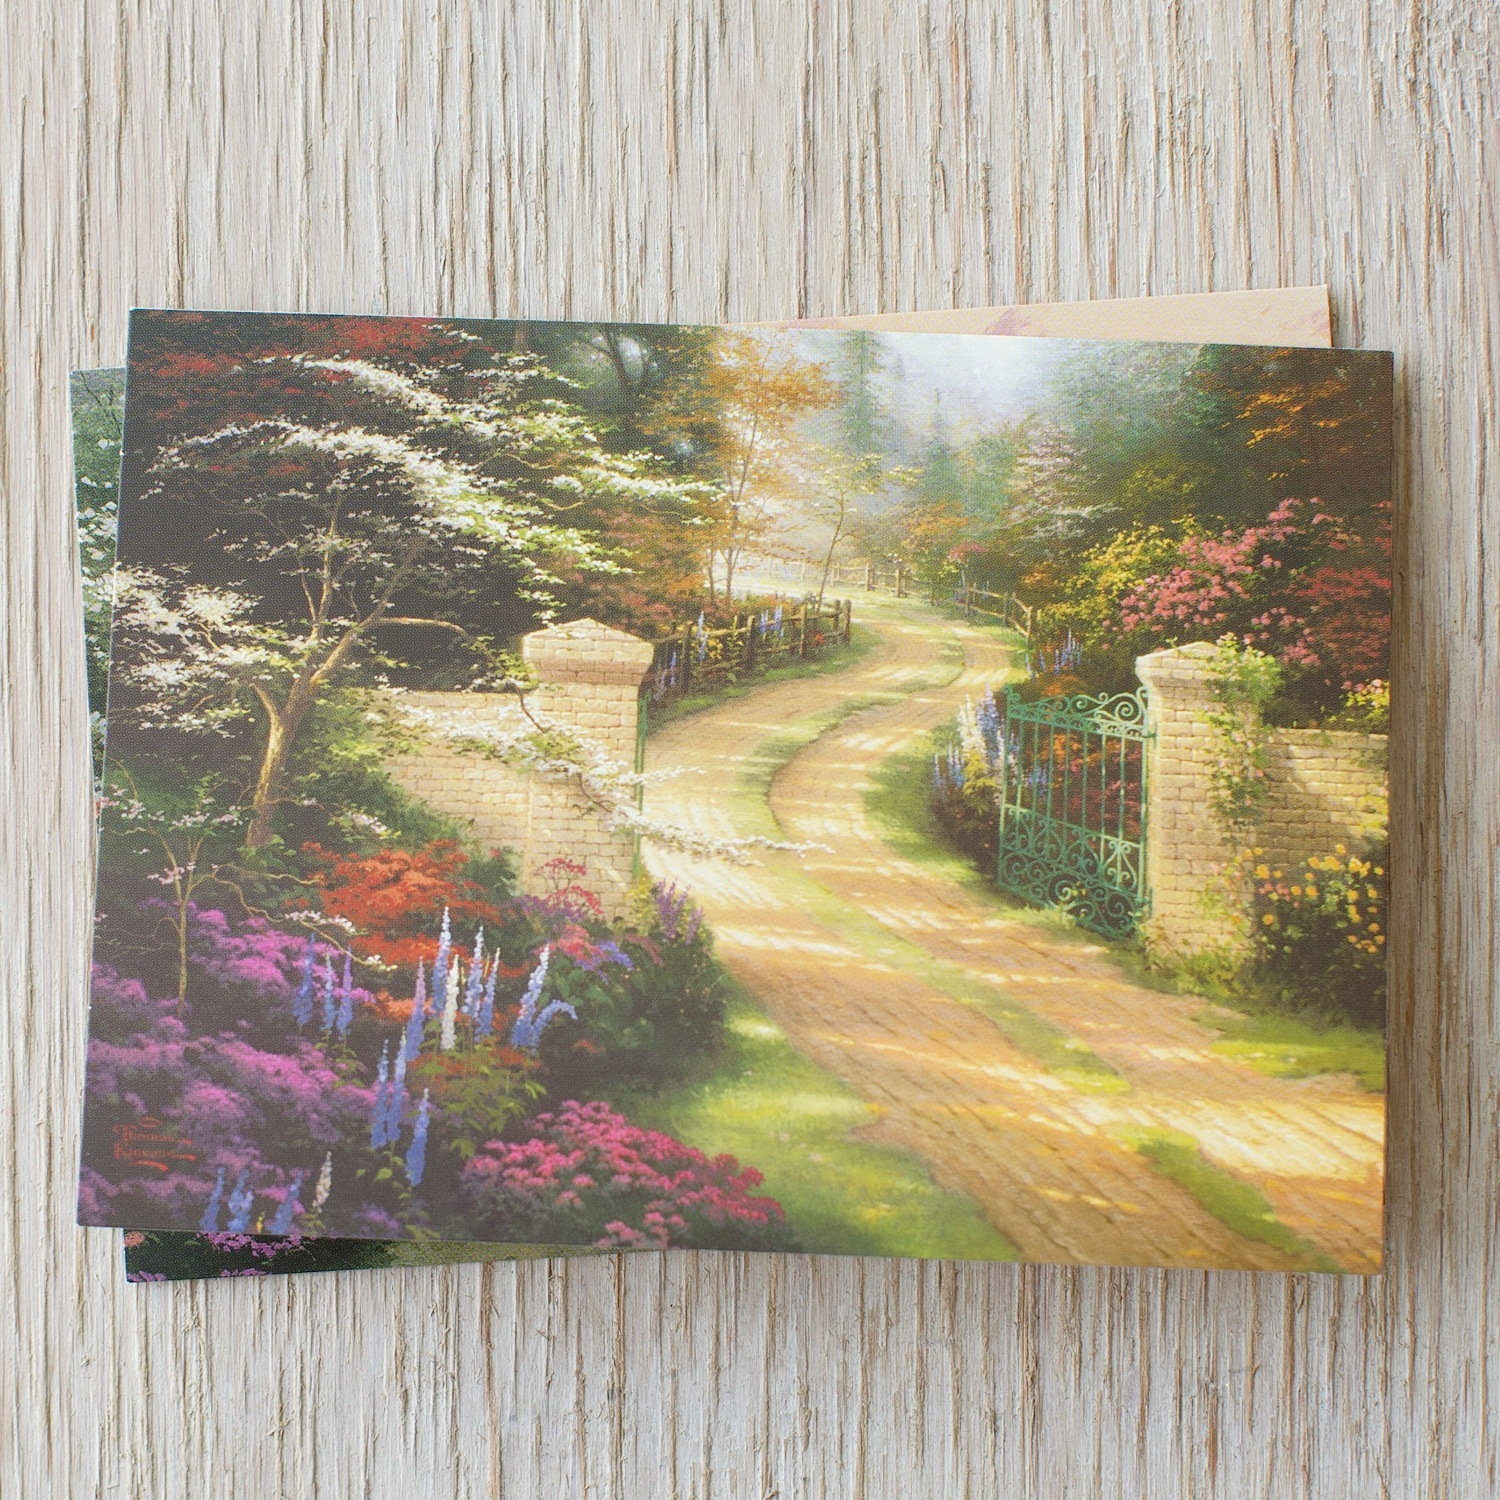 Dayspring thomas kinkade thank you cards the thomas kinkade company dayspring thomas kinkade boxed thank you cards bookmarktalkfo Gallery